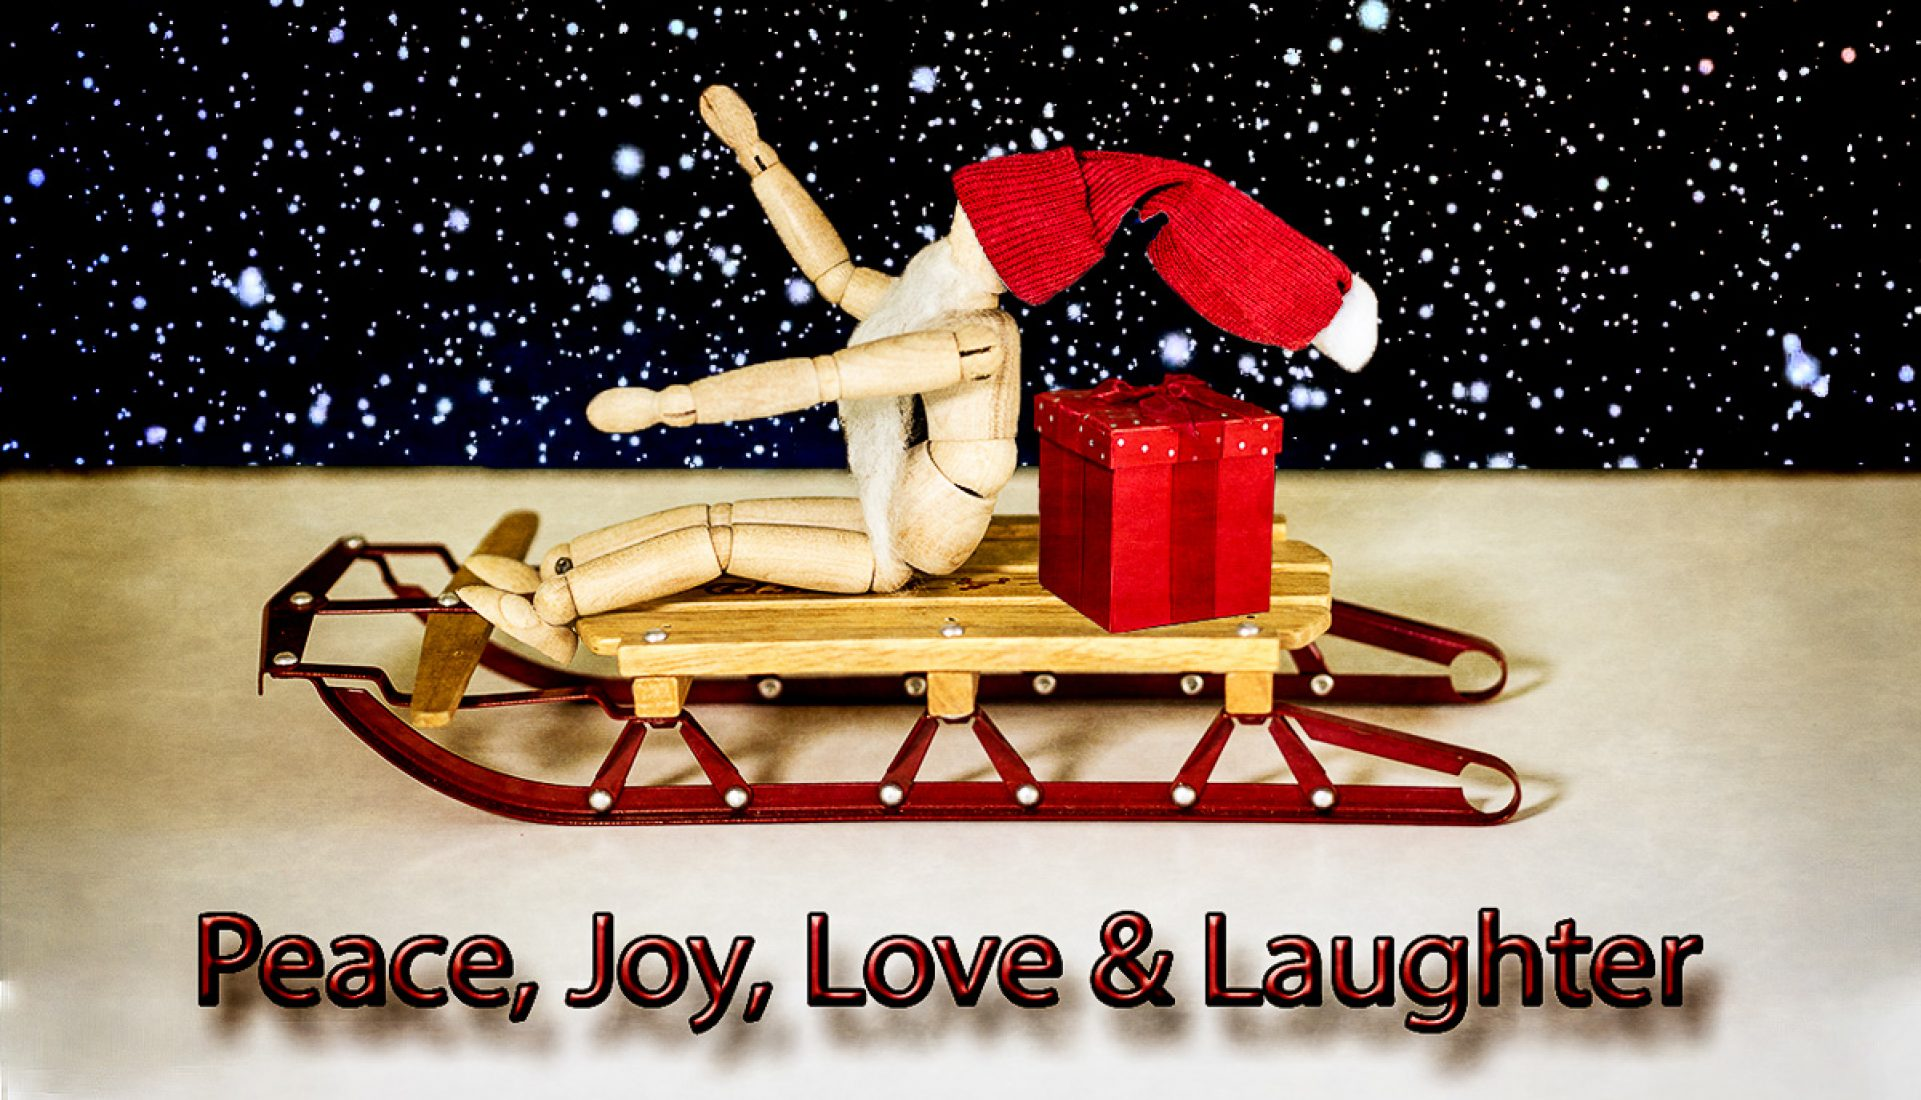 Peace, Joy, Love & Laughter